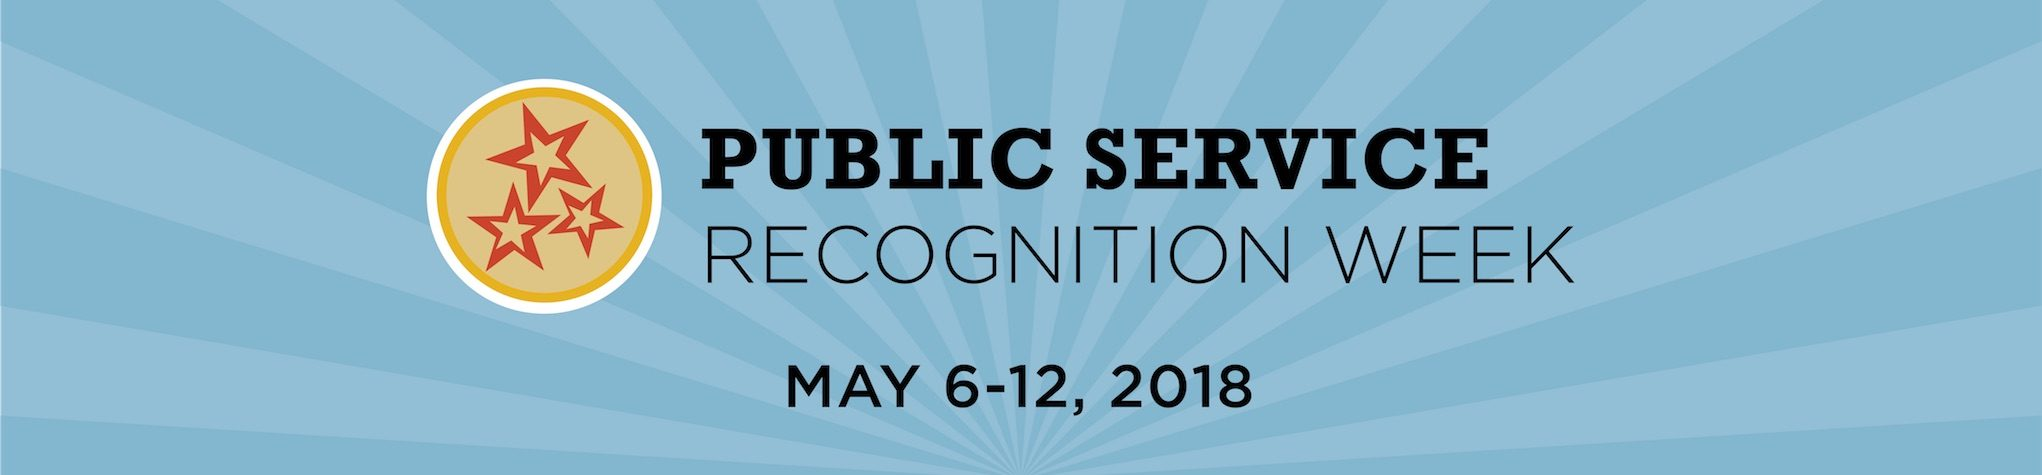 A blue banner with a yellow circle on it. Inside the circle there are 3 red stars. The banner reads Public Service Recognition Week, May 6-12, 2018.